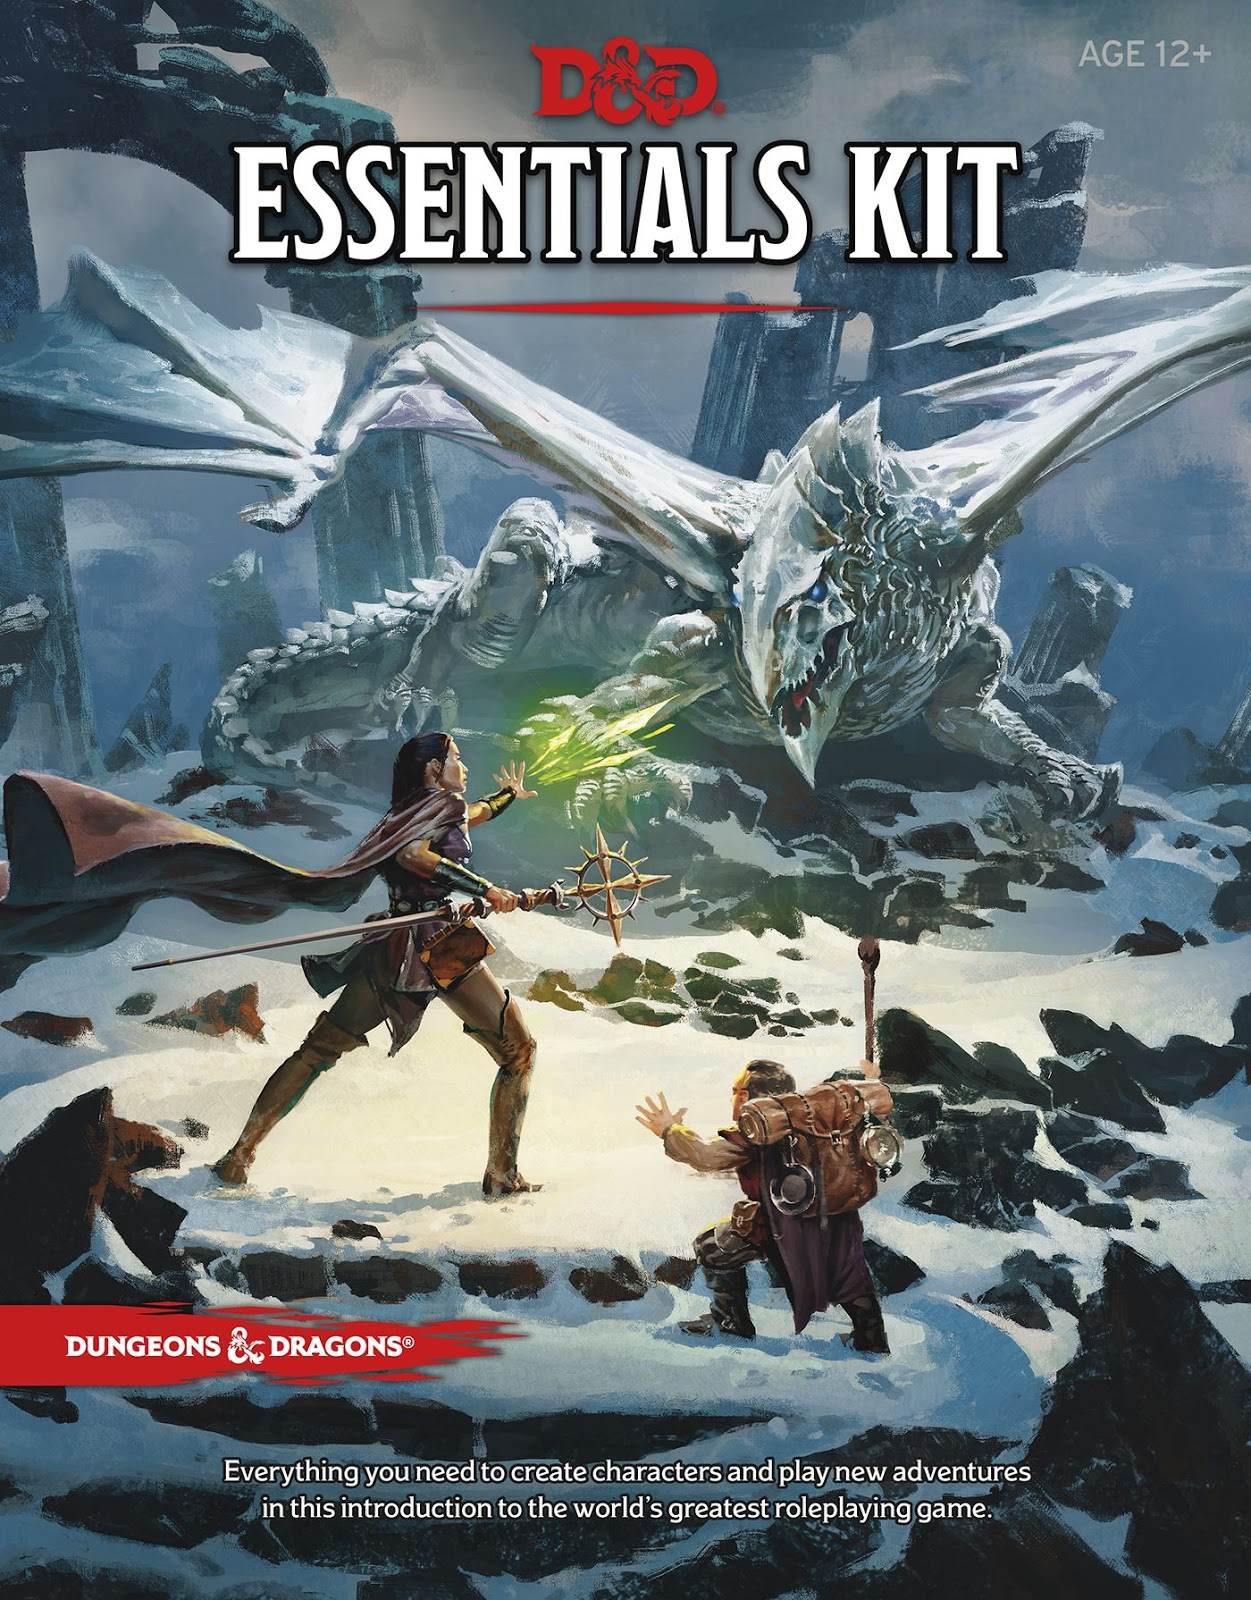 Raging Owlbear: D&D Essentials Kit Review